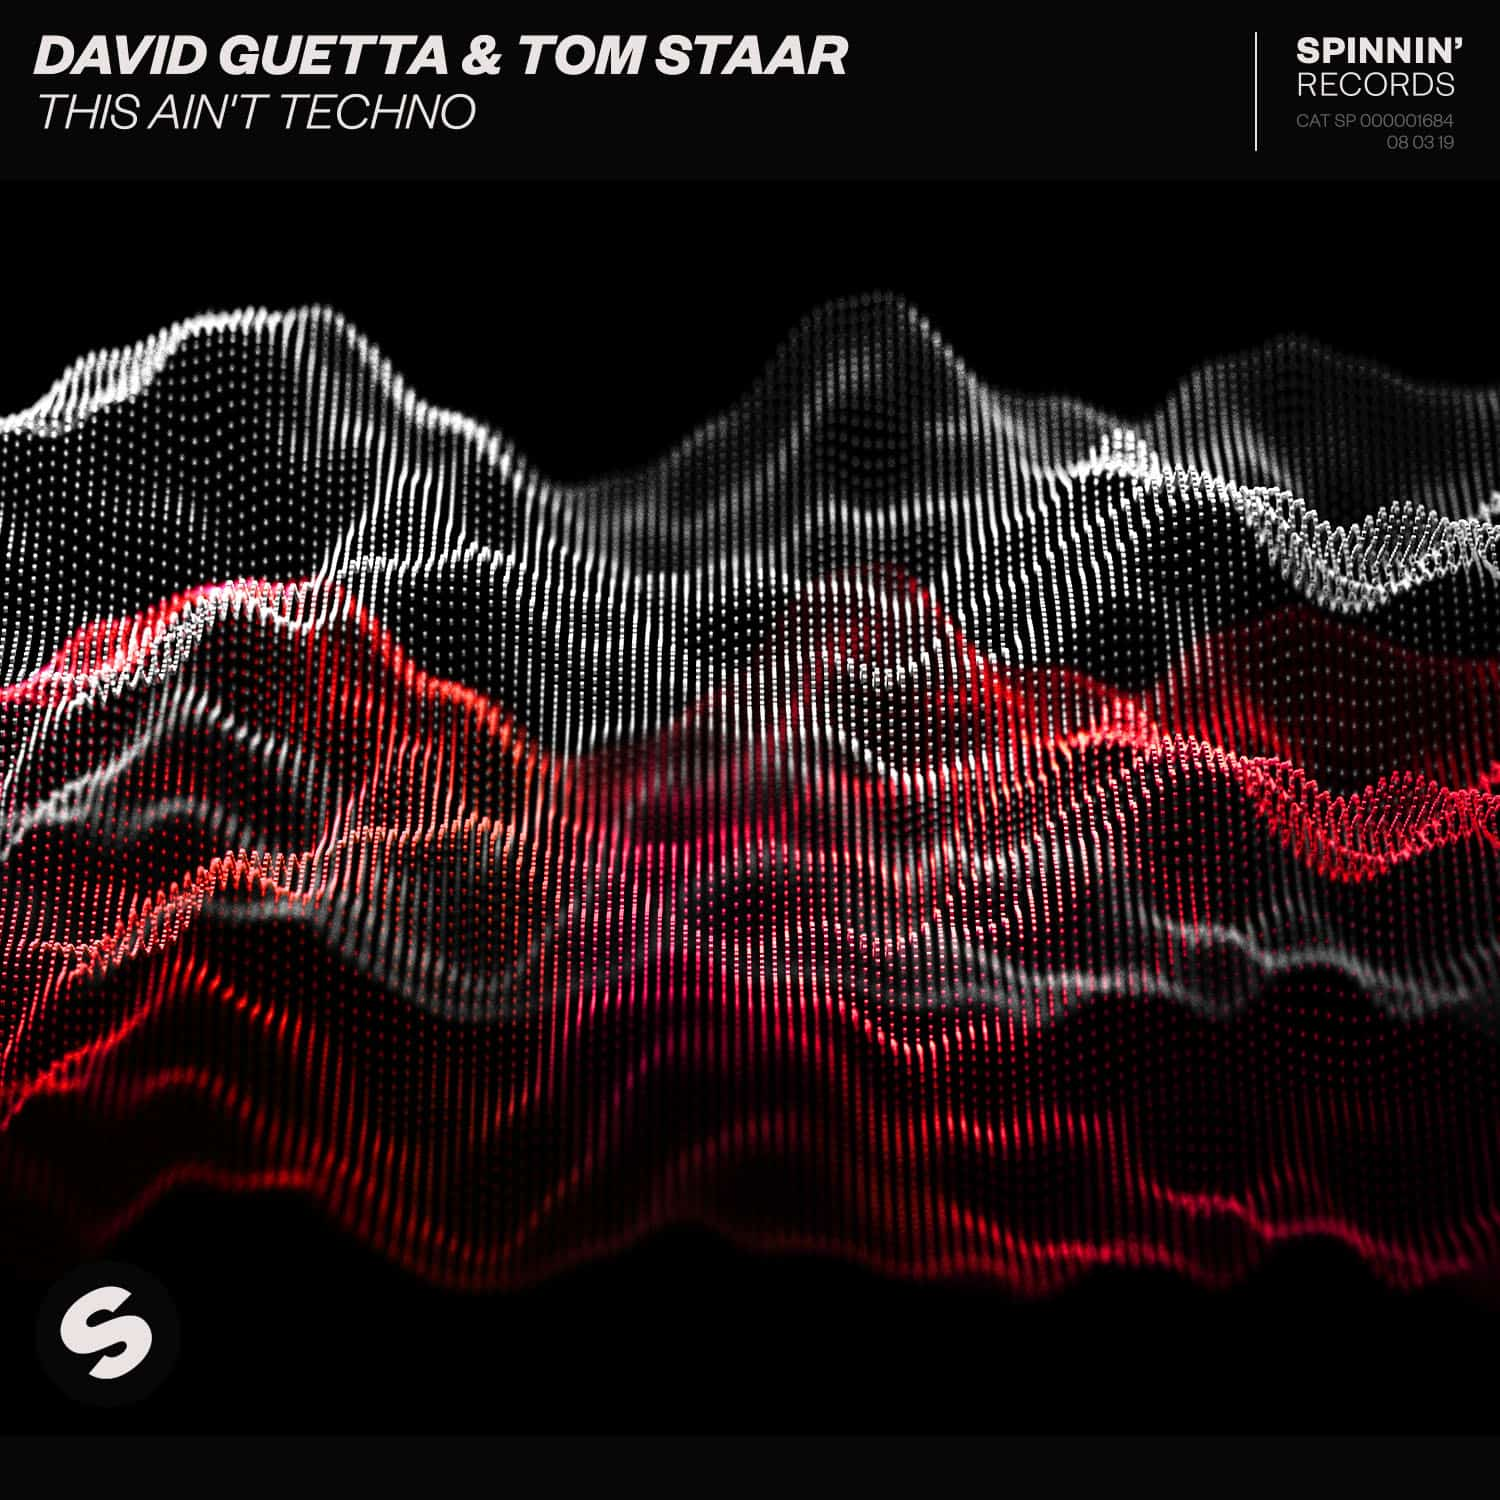 David Guetta returns with powerful club tune with leading UK artist Tom Staar:  'This Ain't Techno'